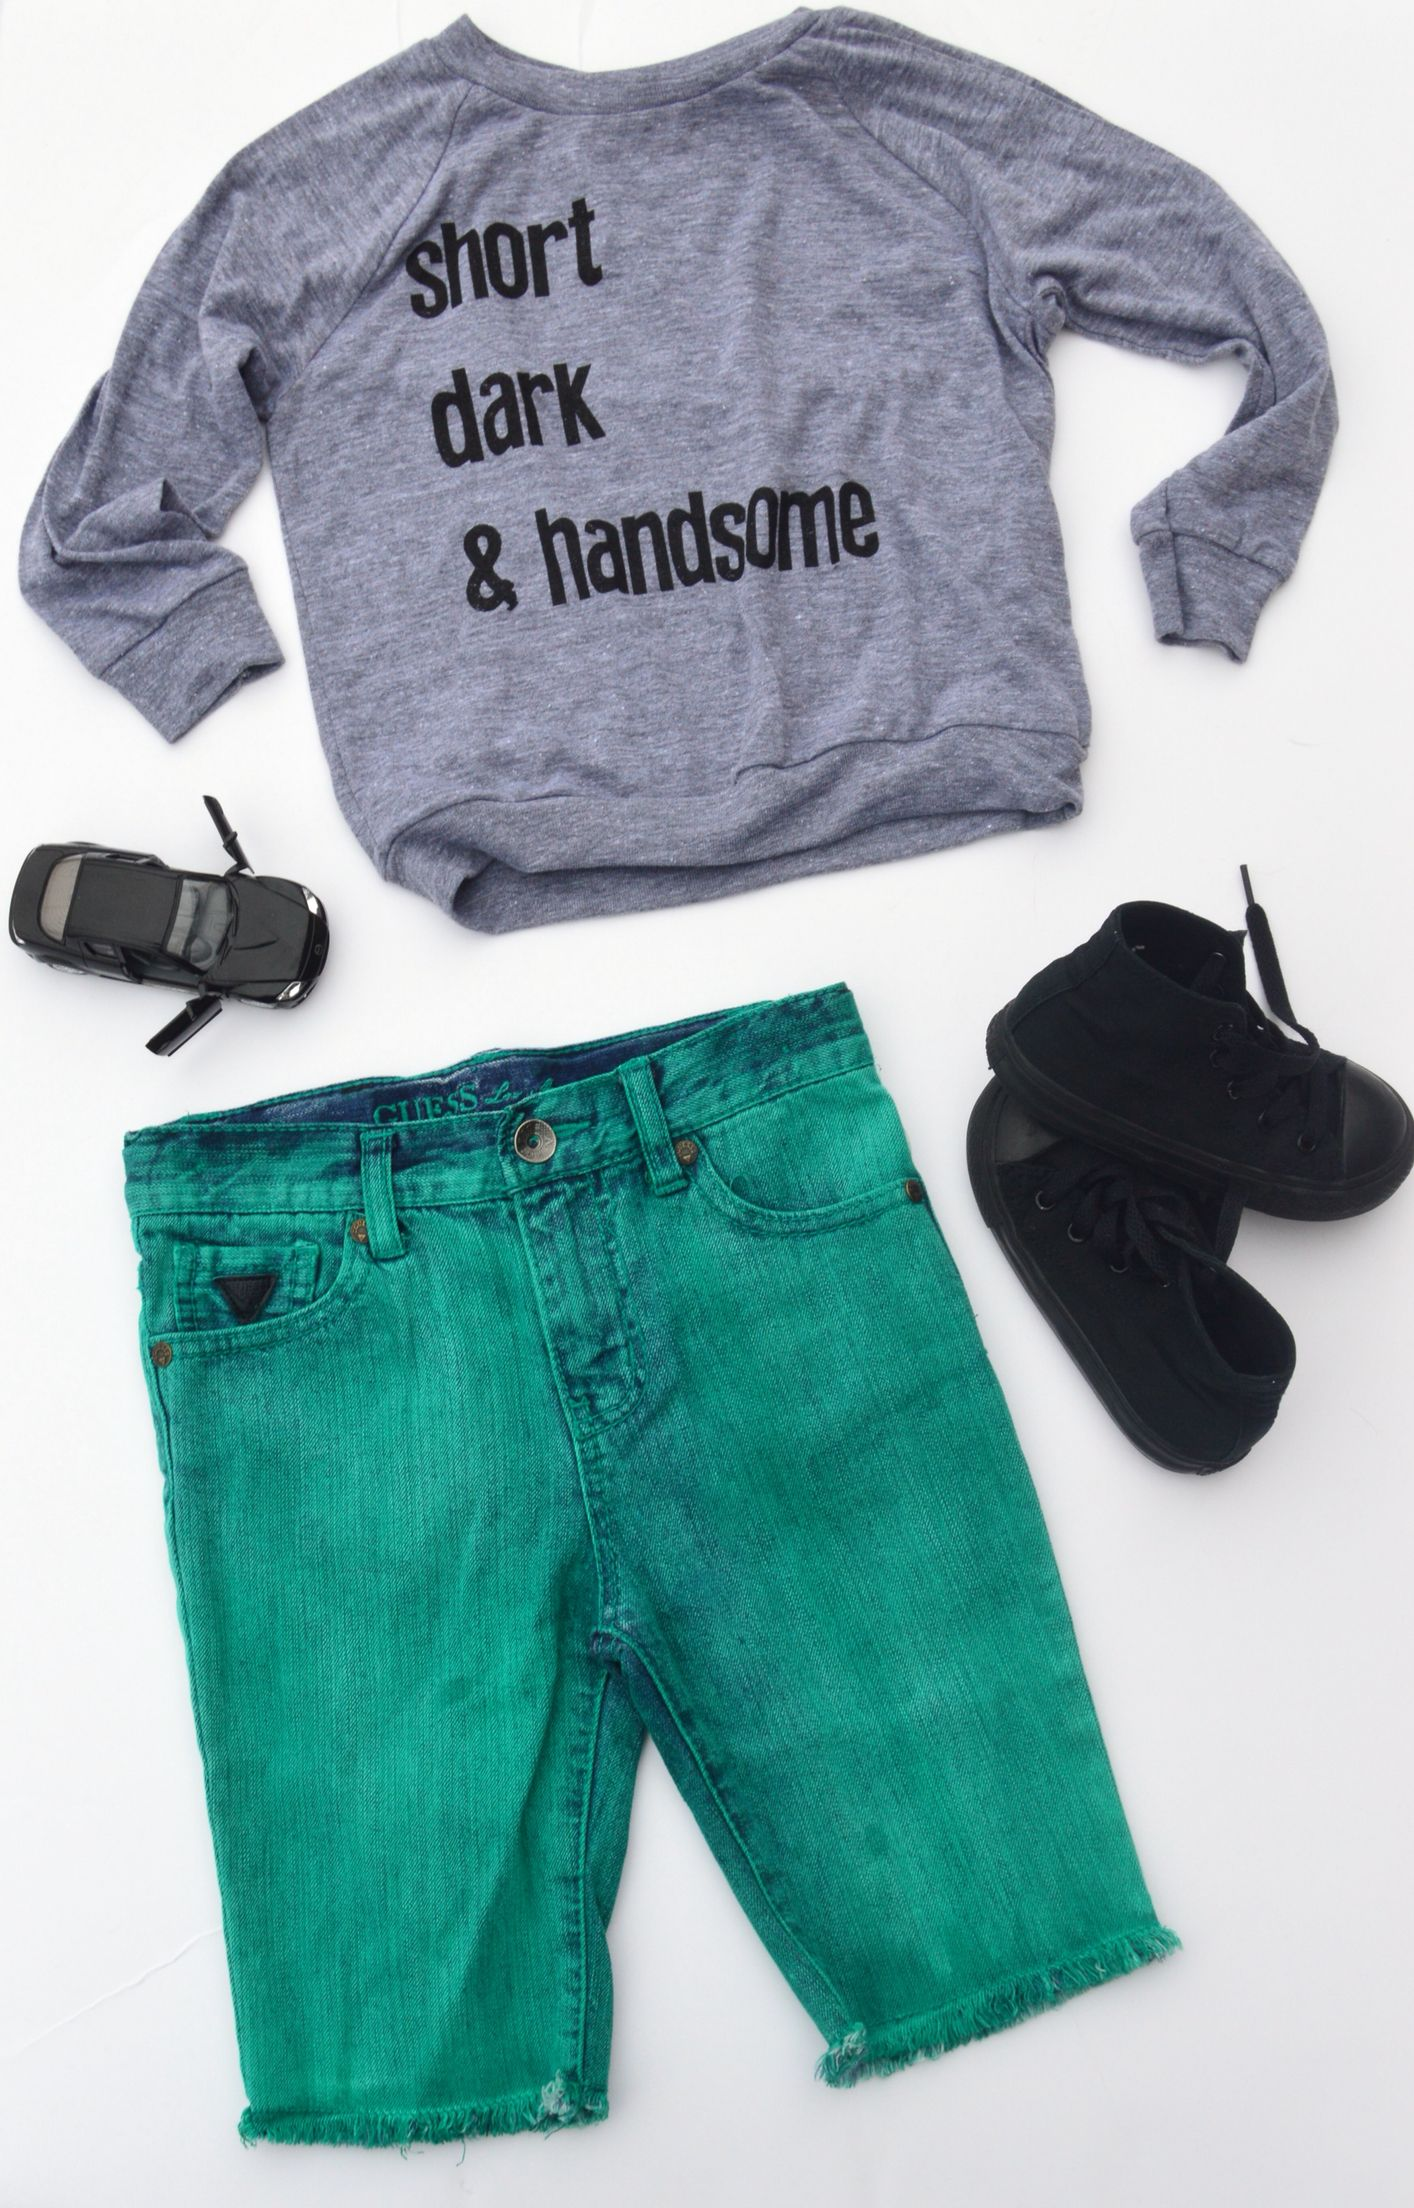 Short Dark & Handsome Raglan KaAn s Designs Guess Shorts Converse